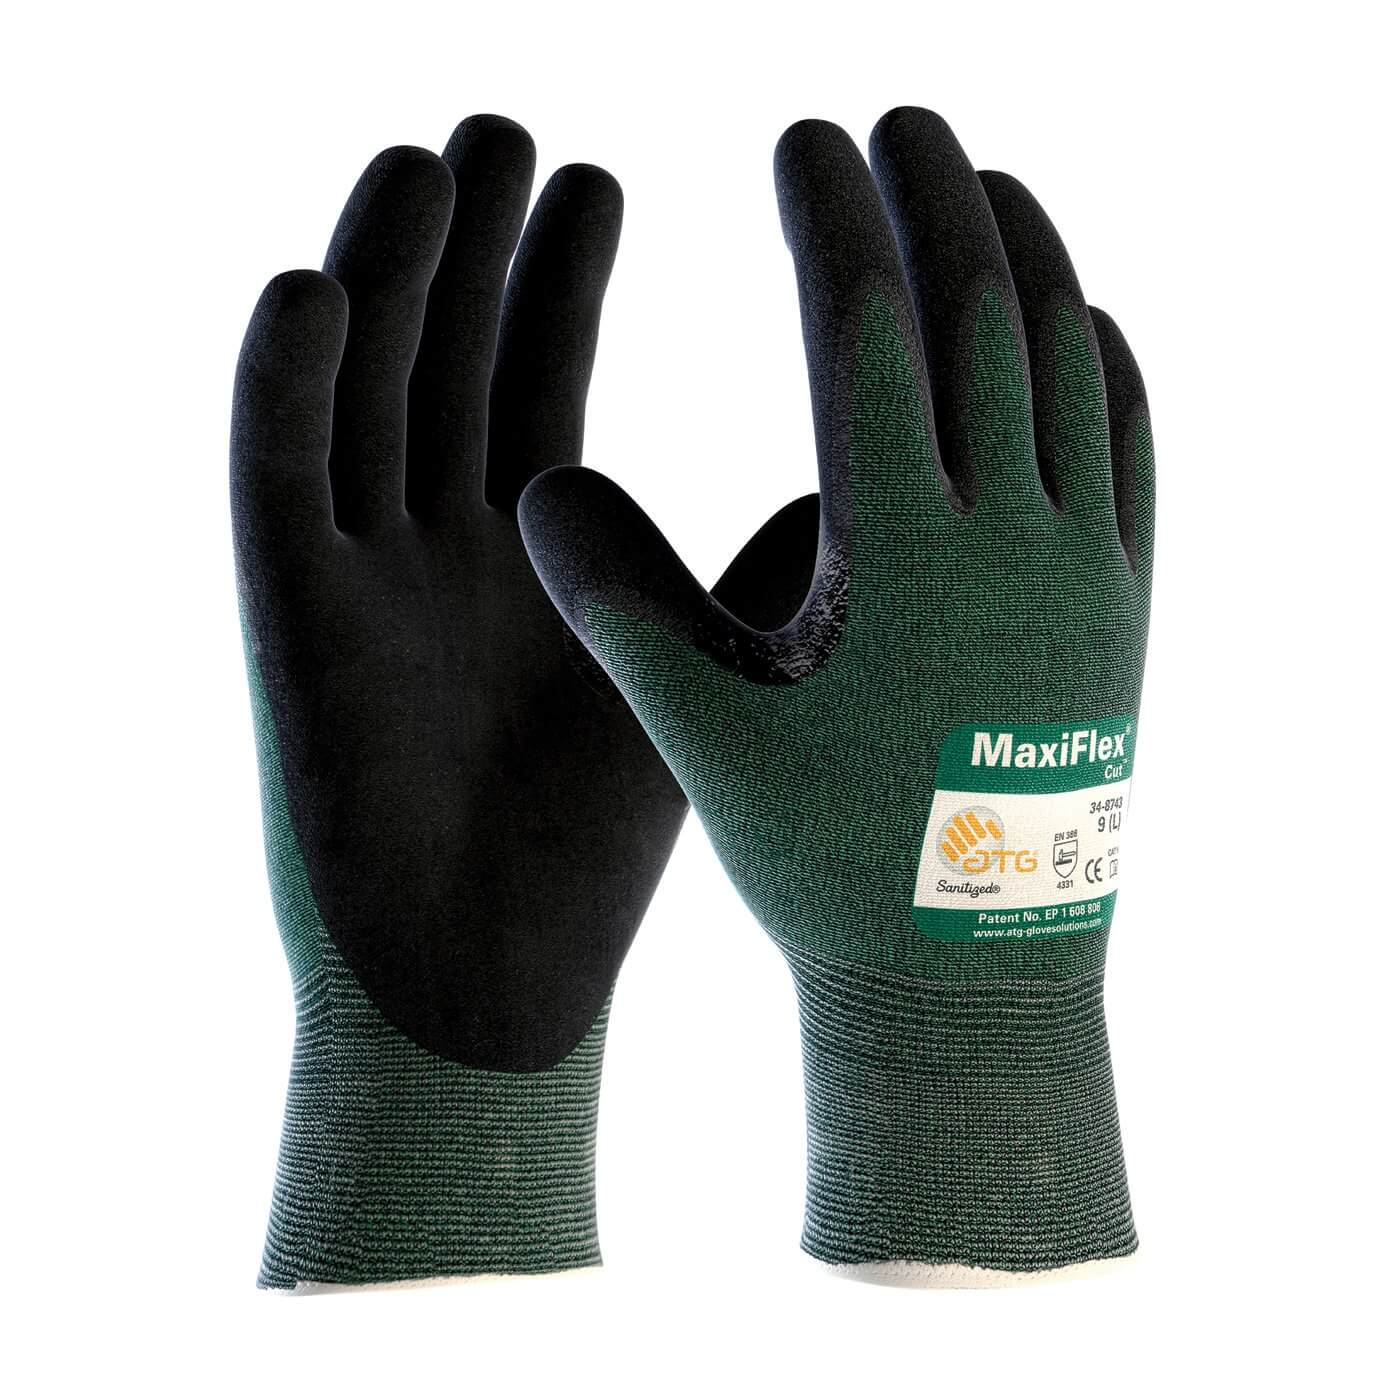 MaxiFlex Cut Resistant Nitrile Coated Gloves